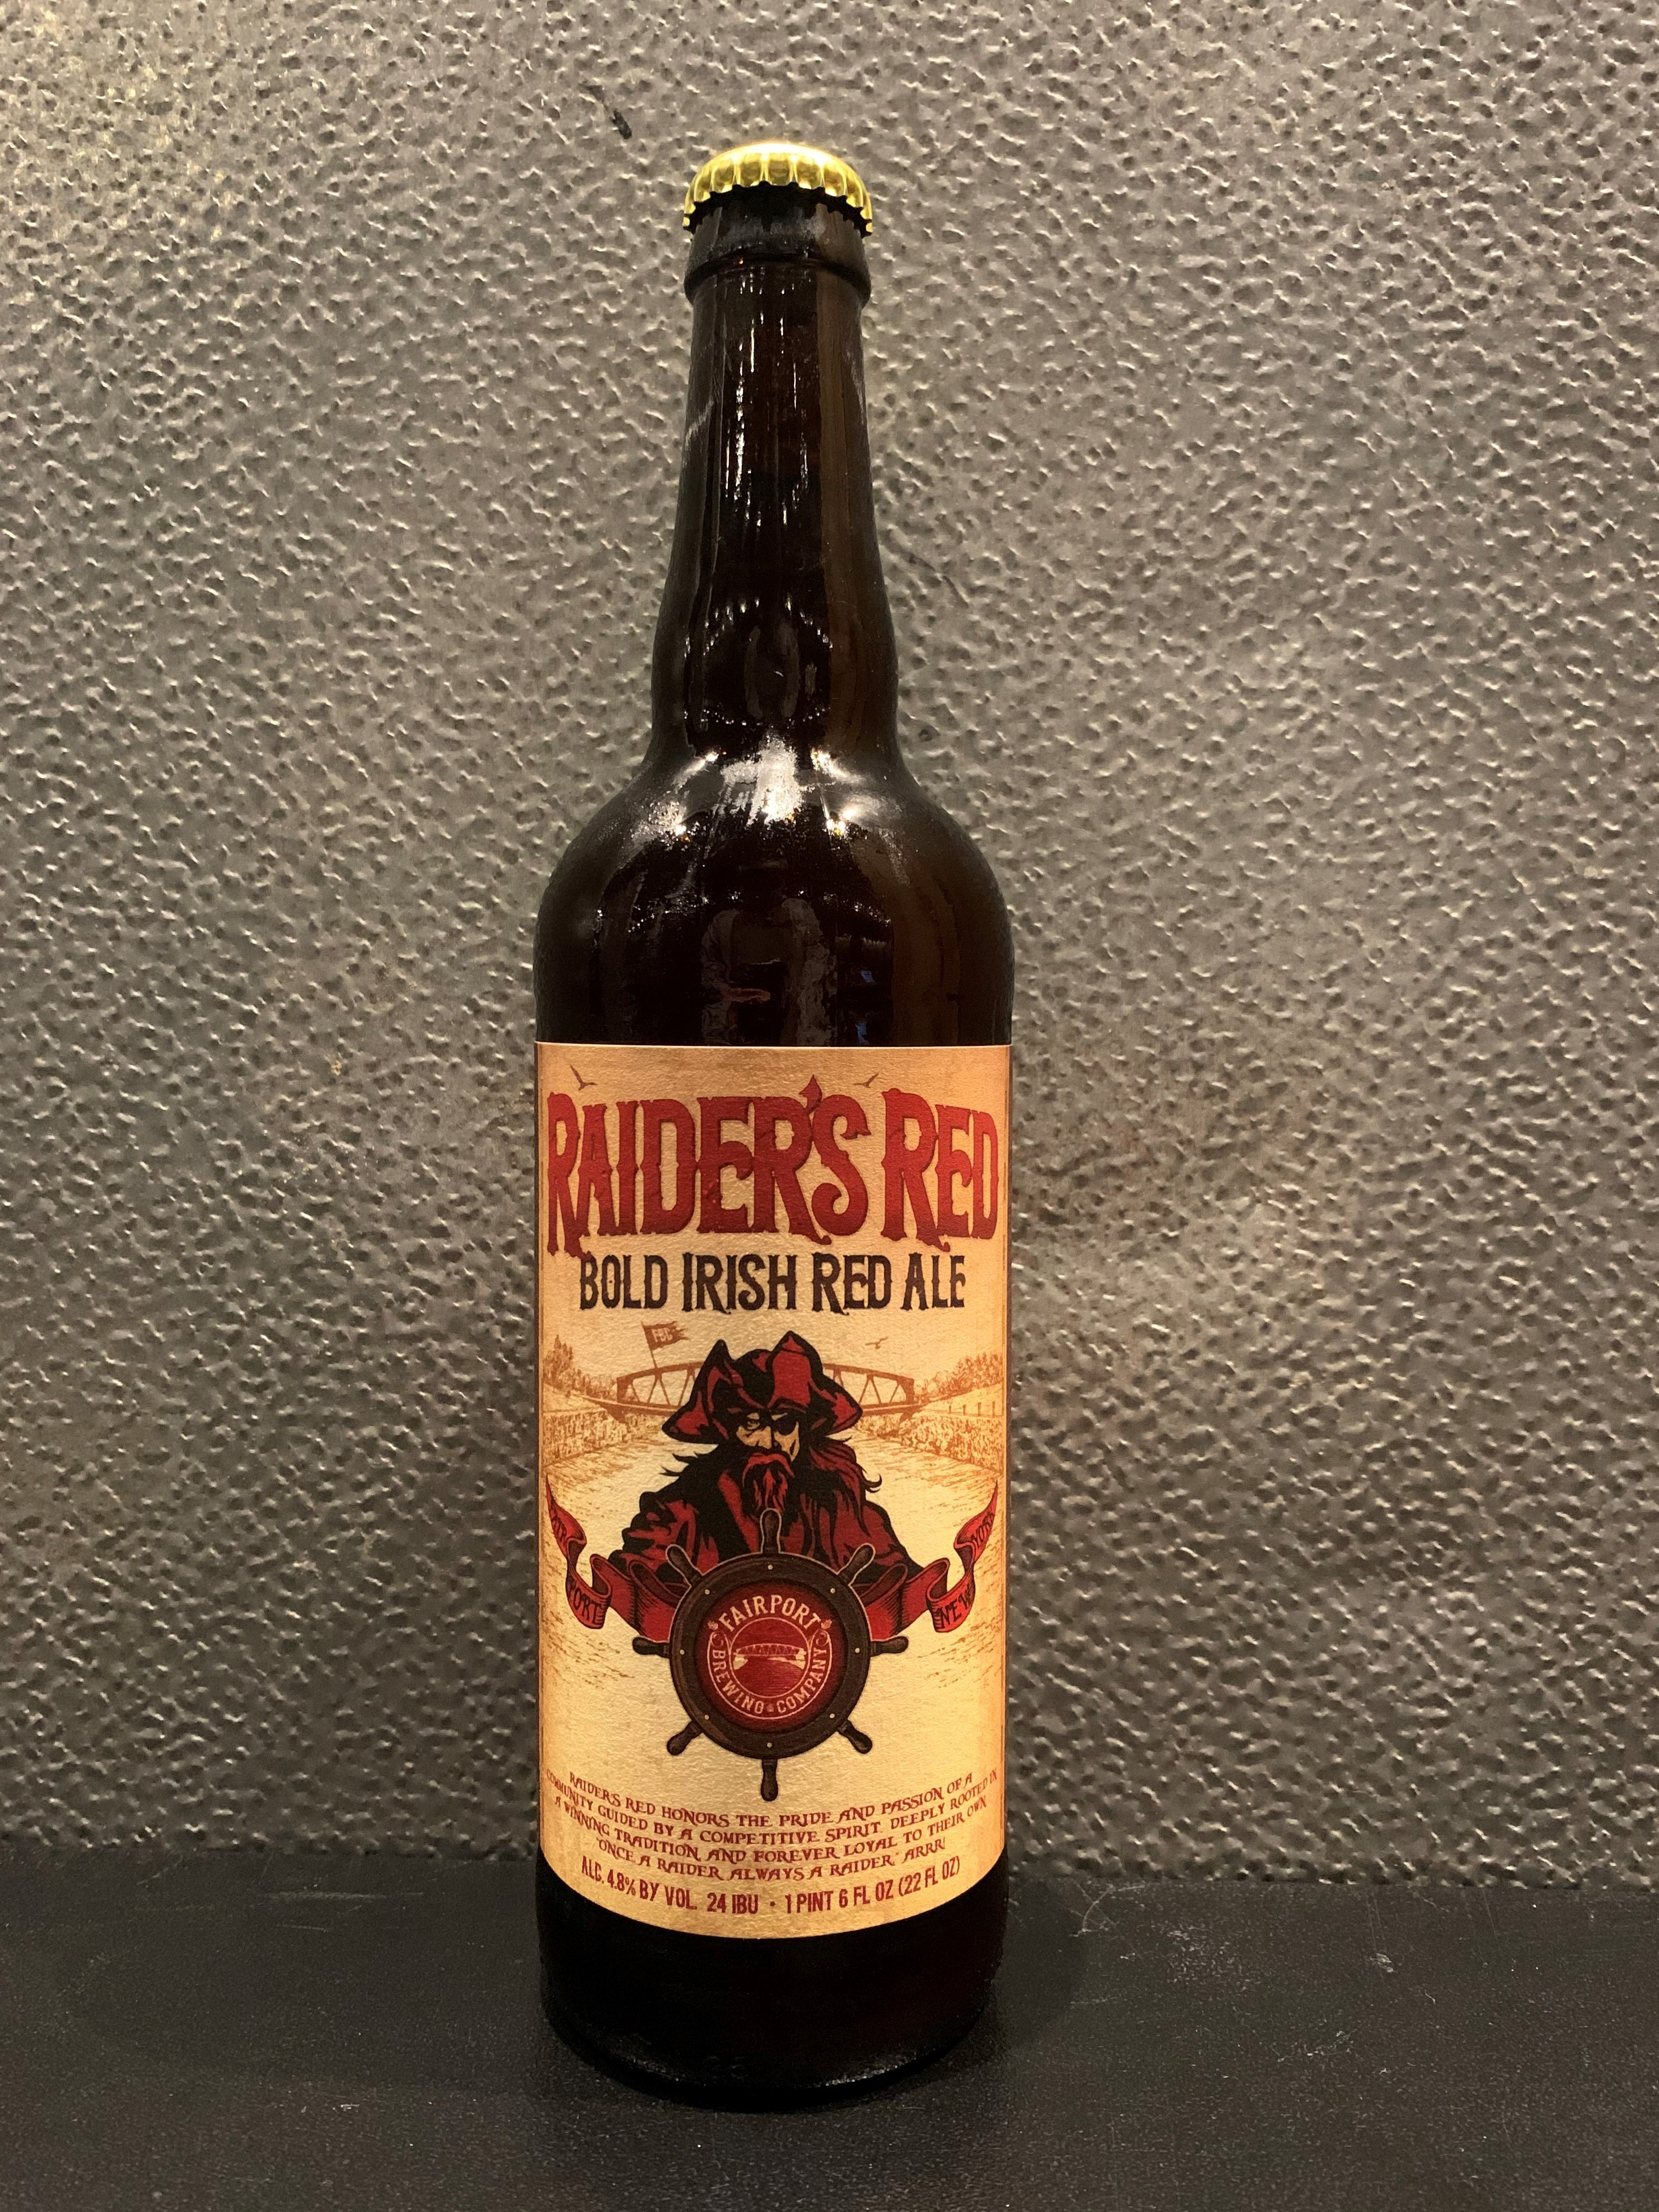 Two Raiders' Red 22oz Bottles